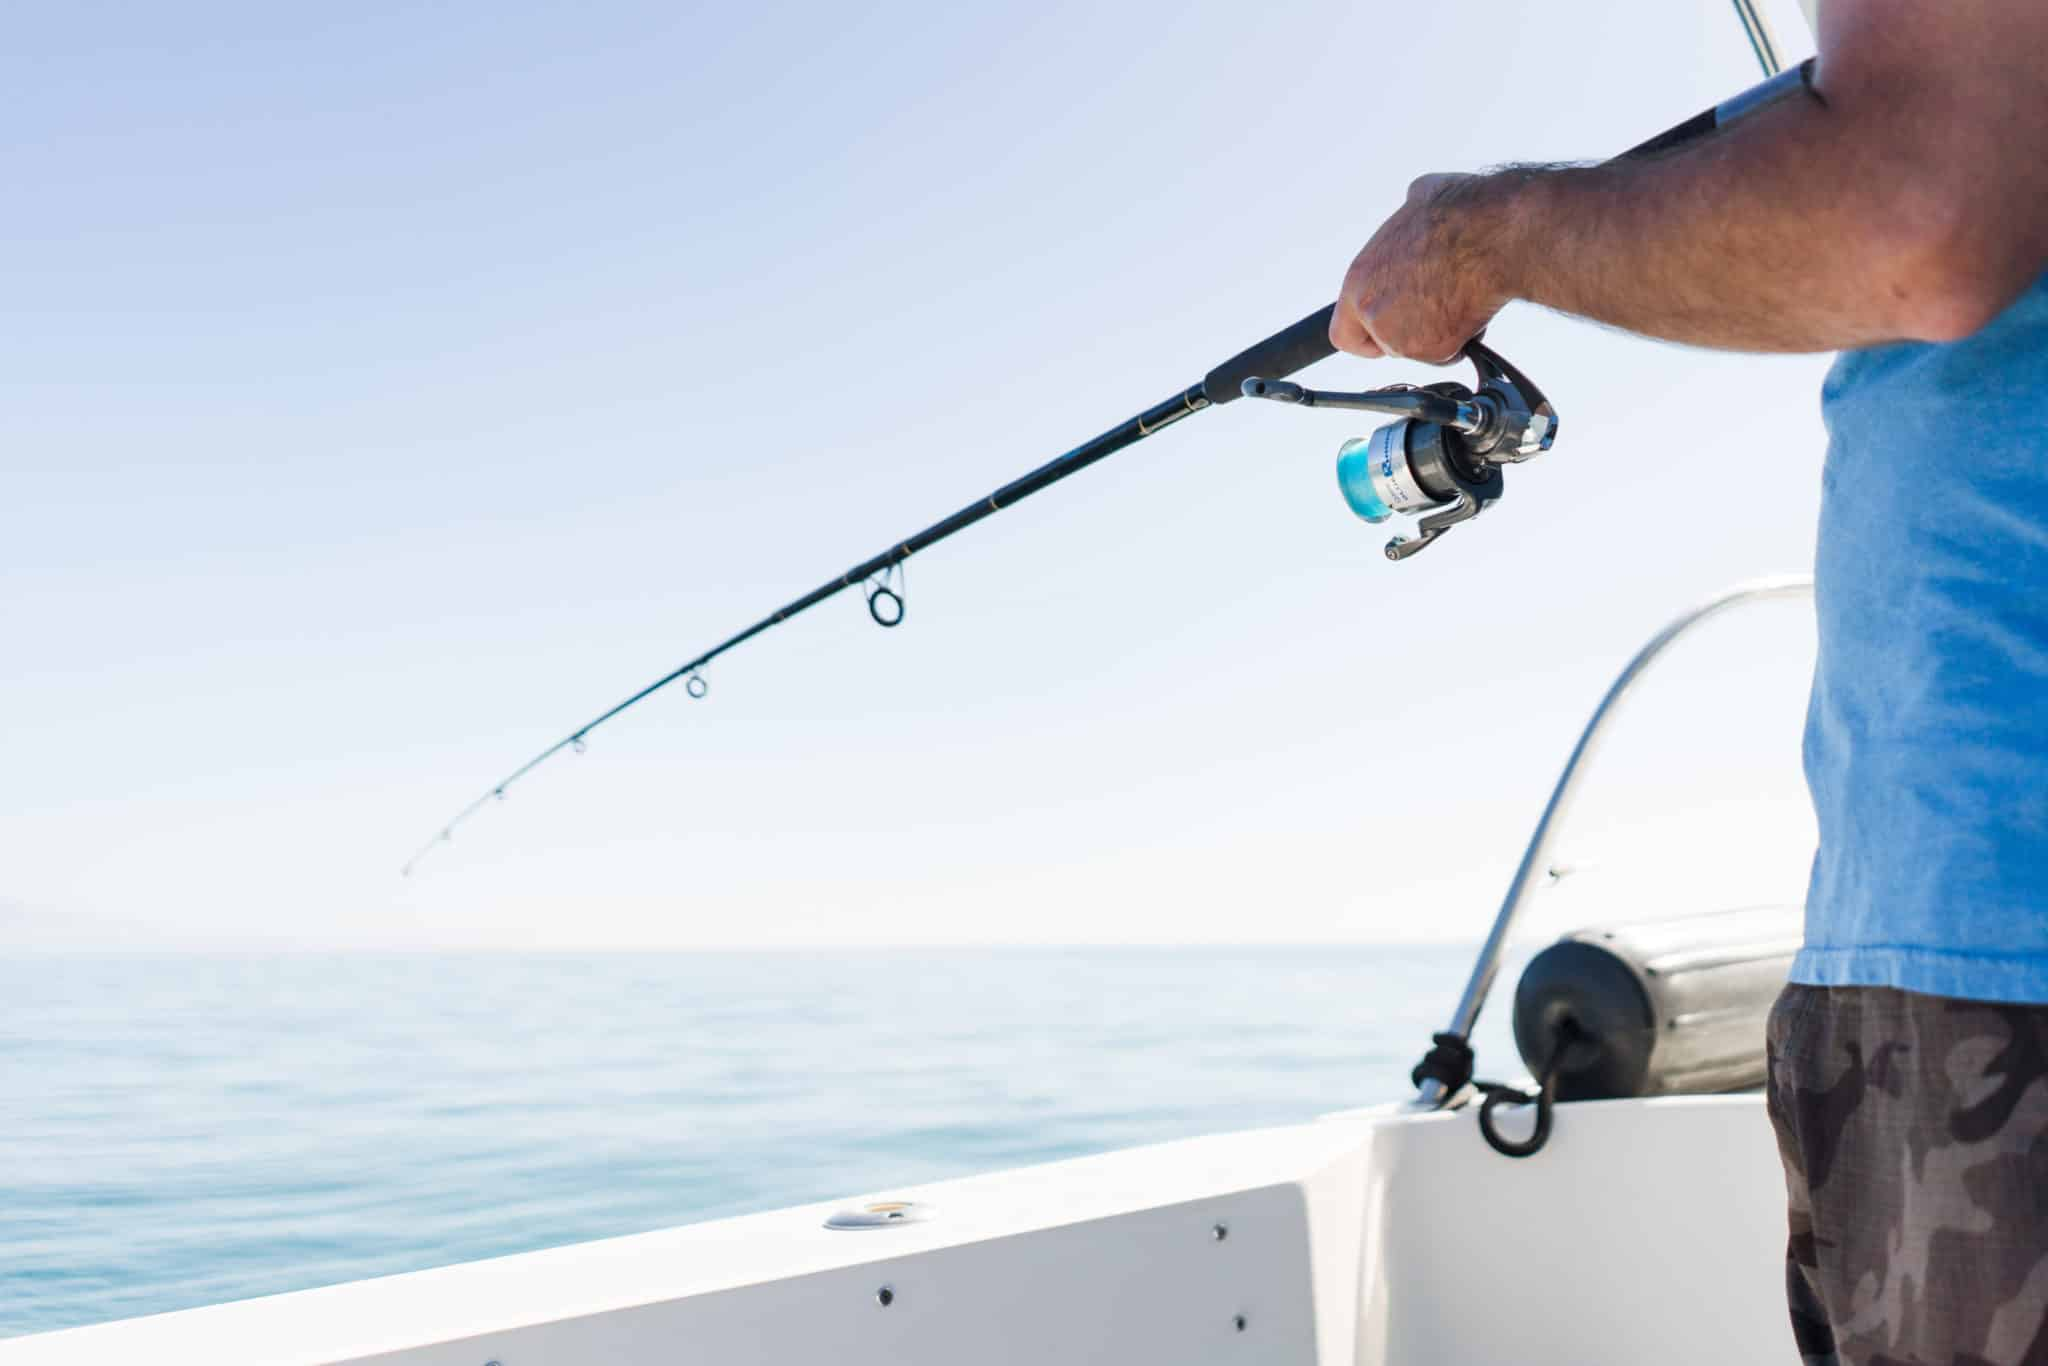 blue sky, darker blue water and hands holding a fishing pole over the side of the boat.